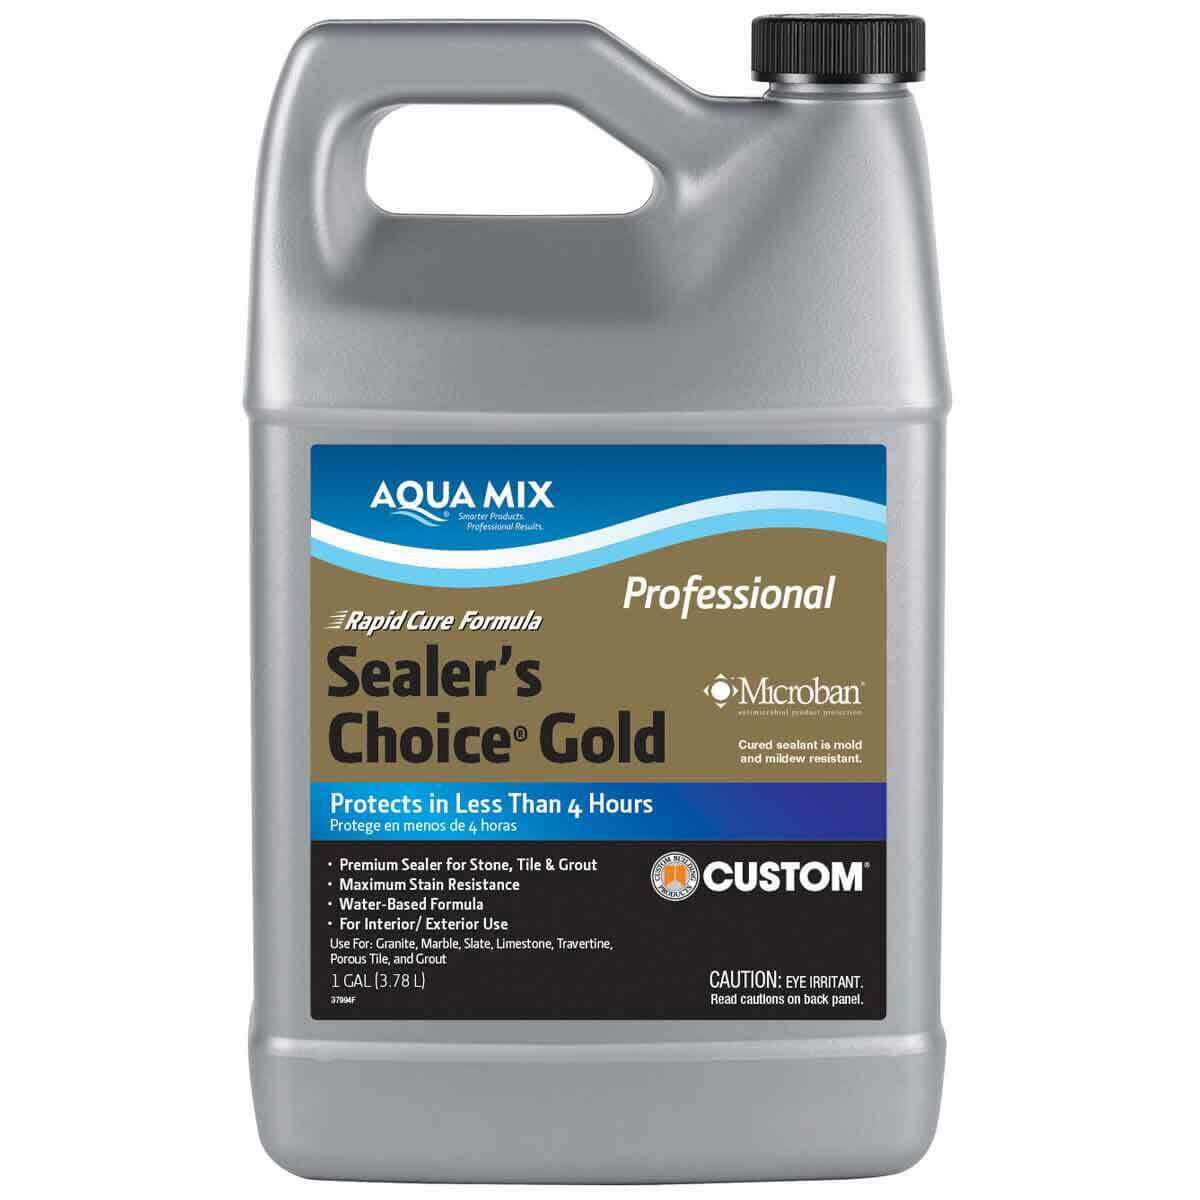 Aqua Mix Sealer's Choice Gold Penetrating Sealer - 1 Gallon